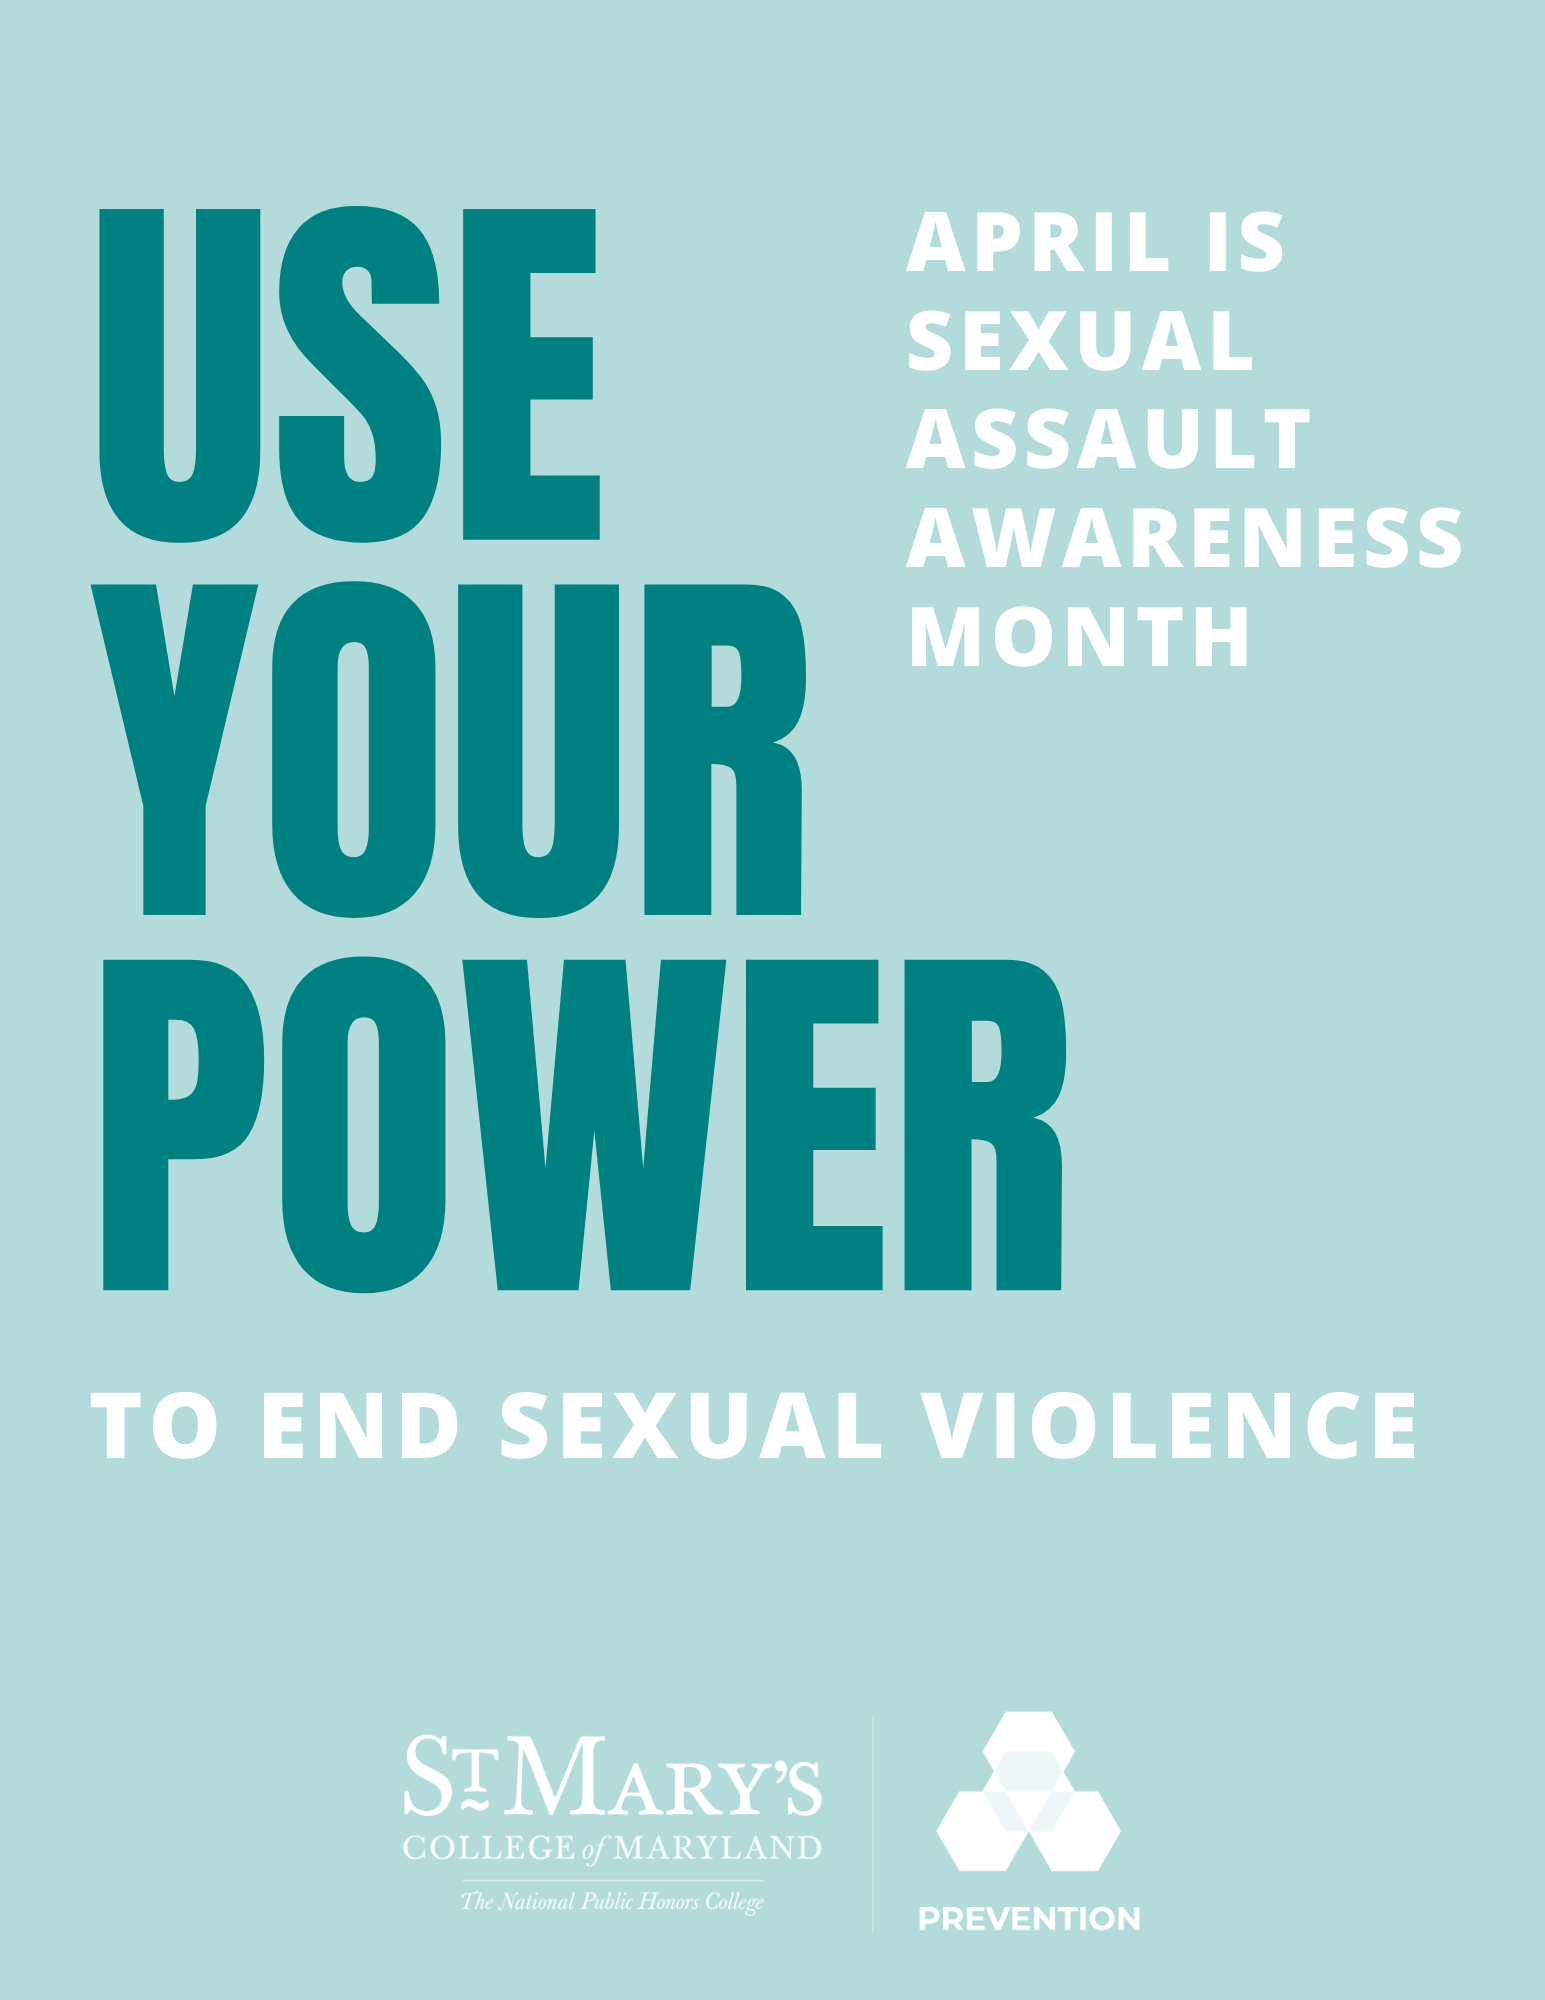 To end Sexual Violence